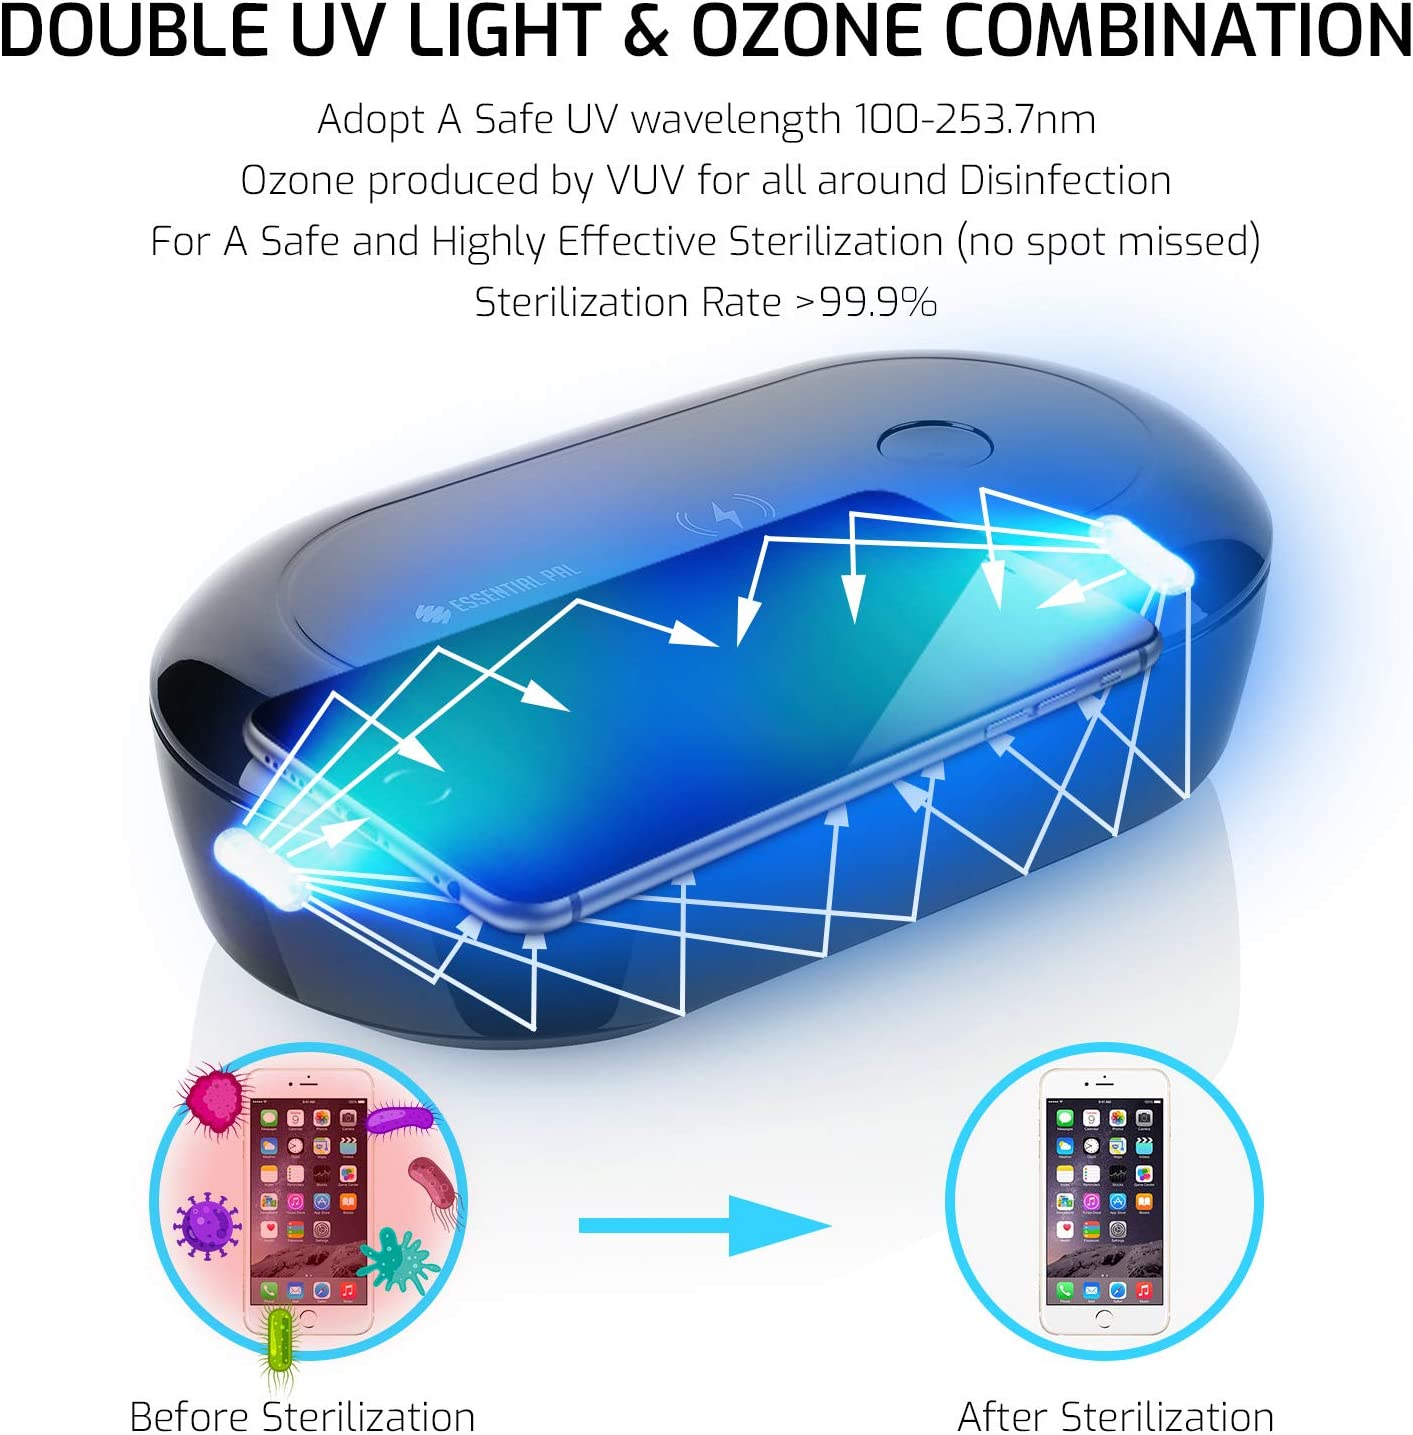 Wireless Charger Aromatherapy Function Quick Sterilizing in 99 or 180 Seconds for Mobile Phone UV Light Sanitizer Disinfectant Box Keys /& Everyday Accessories EssentialPal UV Sterilizer Box